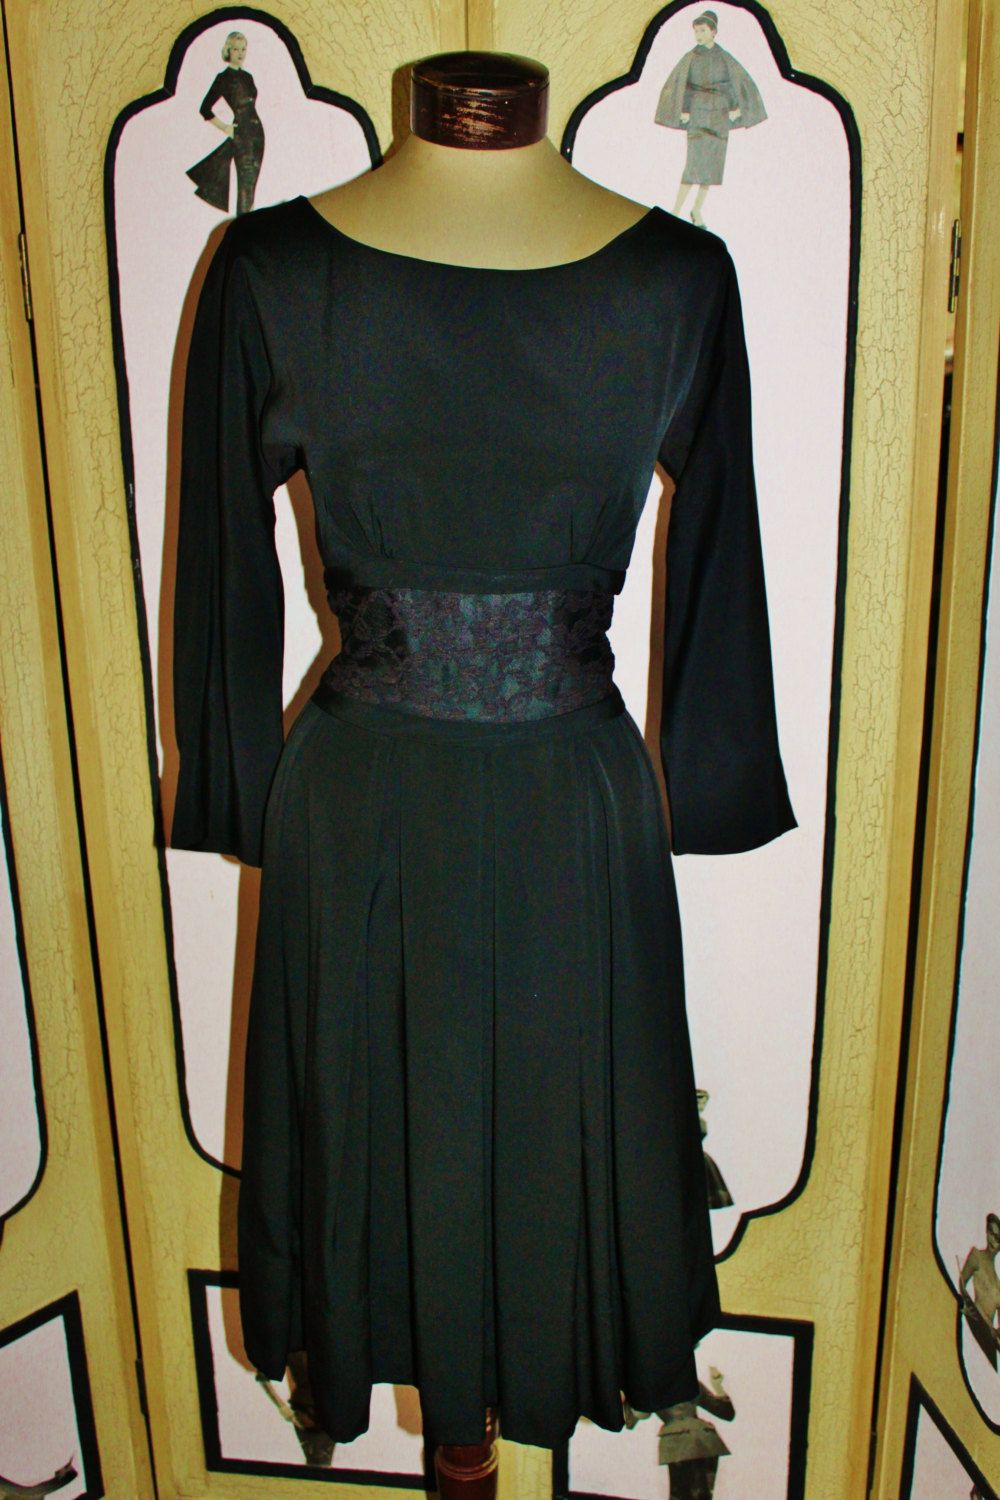 624c8e77e98 Vintage 1950 s Lace Inset Cocktail Dress in Black by Leslie Fay ...